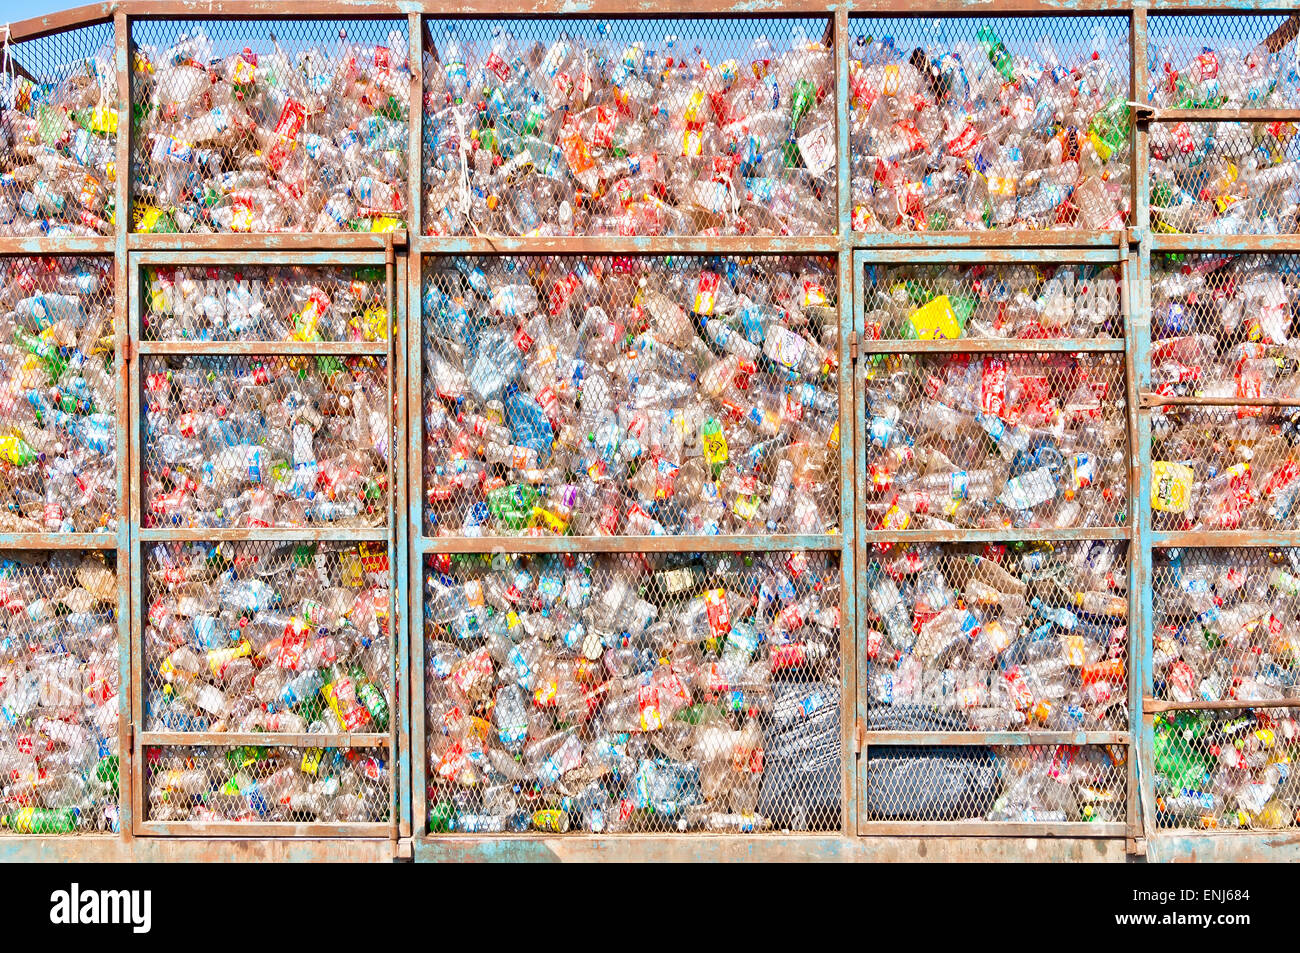 Isla Mujeres, Mexico - April 24, 2014: plastic bottles lie in a heap in a metal cage on a truck in Isla Mujeres, - Stock Image